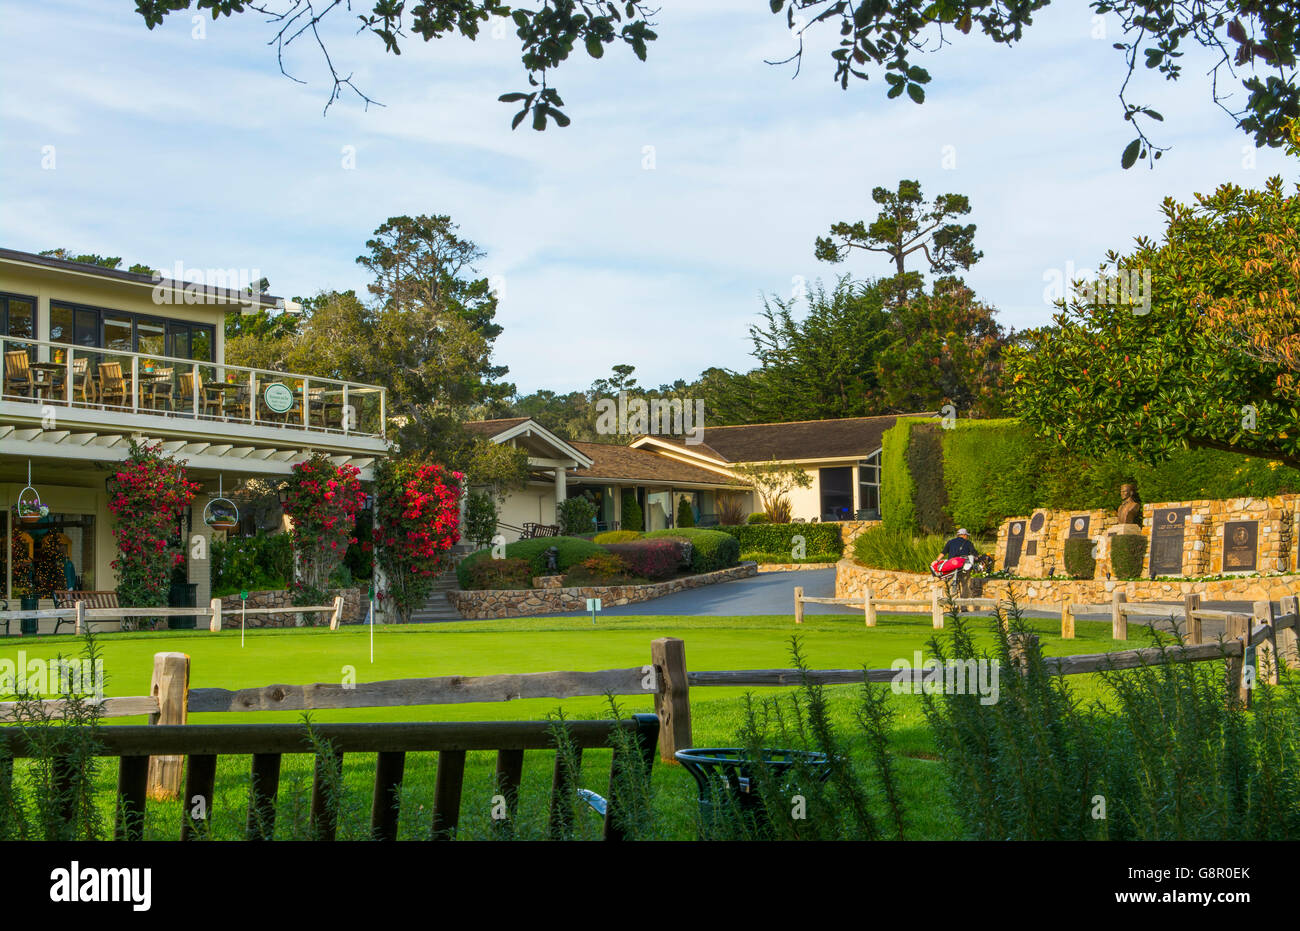 Pebble Beach California shops and putting green at Pebble Beach Golf Links exclusive golf course - Stock Image